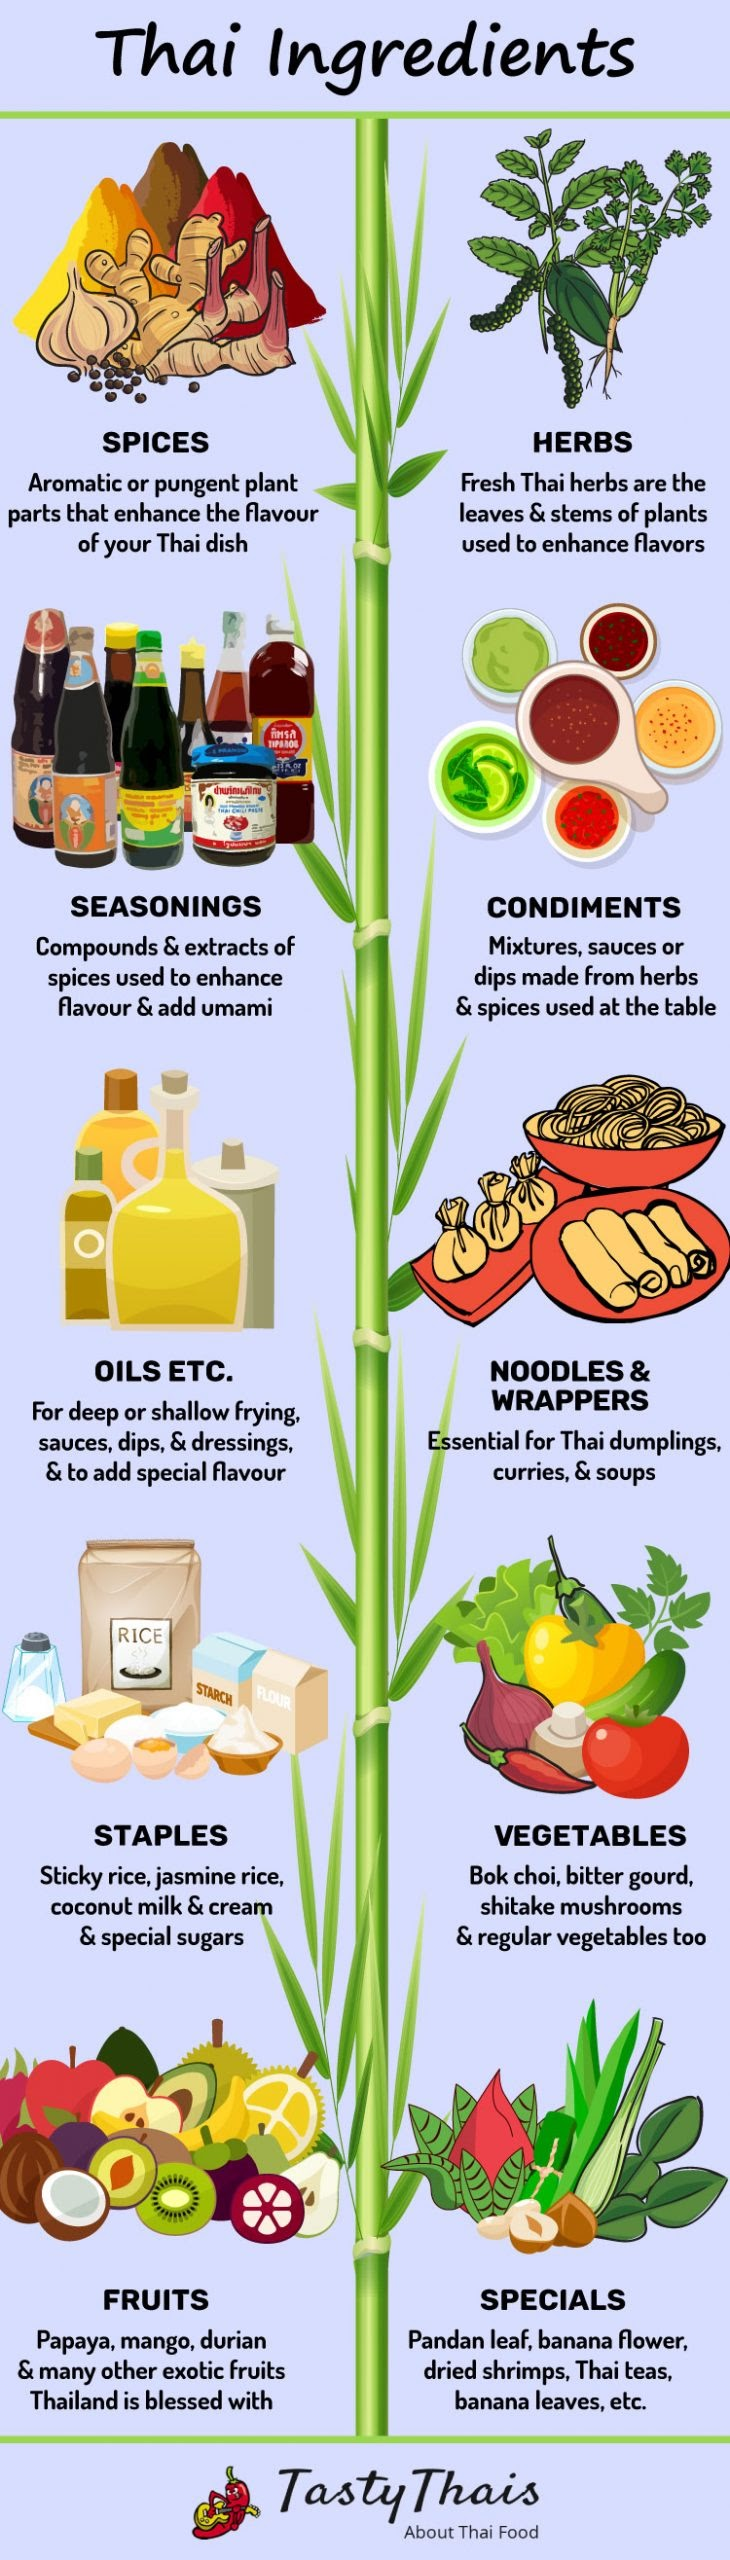 Thai Food Ingredients – Essentials to Cook Thai Food You Need #infographic